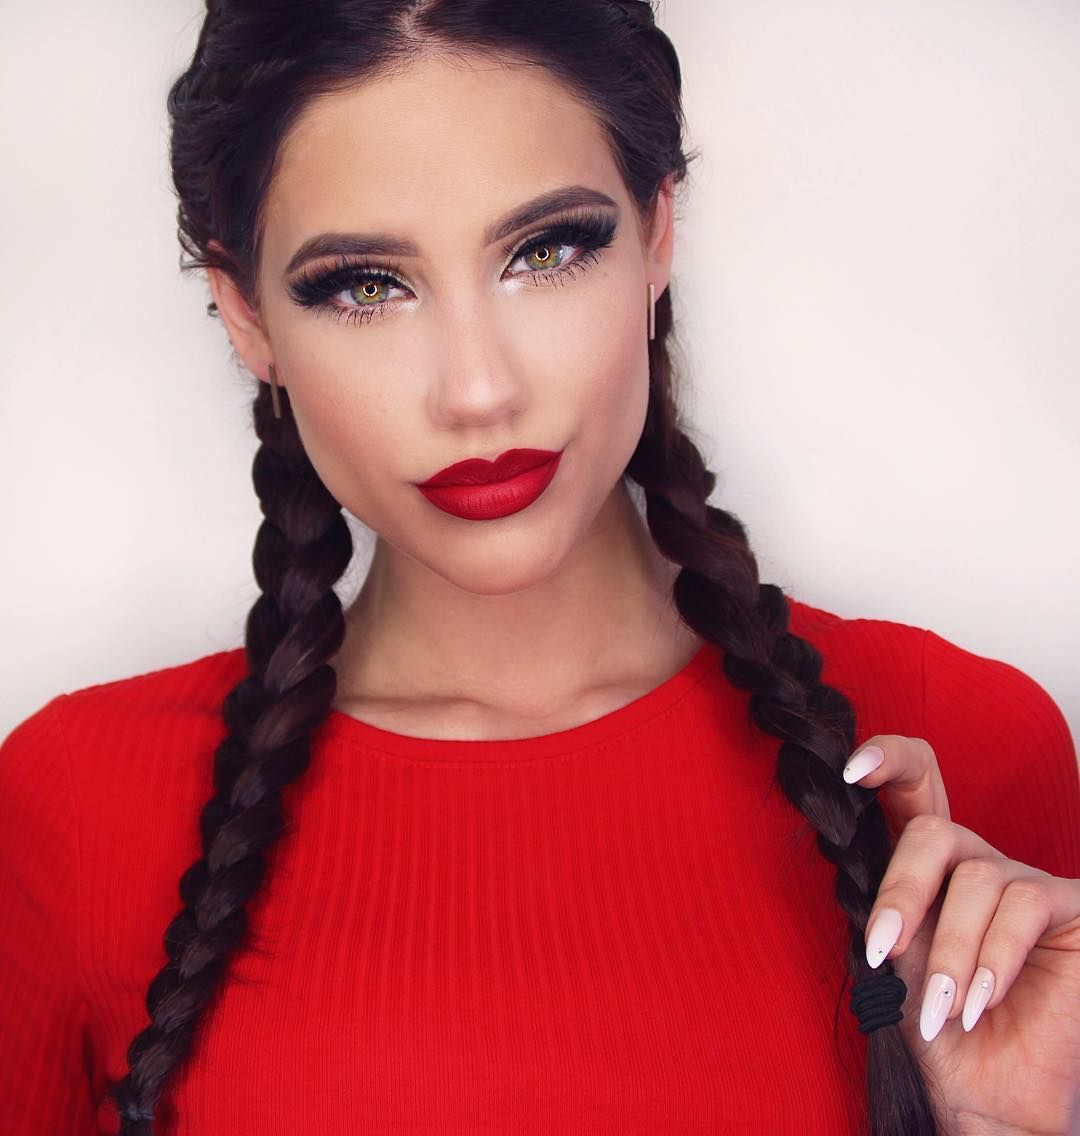 Linda Steph is gorgeous and glamorous in these boxer braids. Loving these excentric pigtails ⠀⠀⠀⠀⠀⠀⠀⠀  ⠀⠀⠀⠀⠀⠀⠀